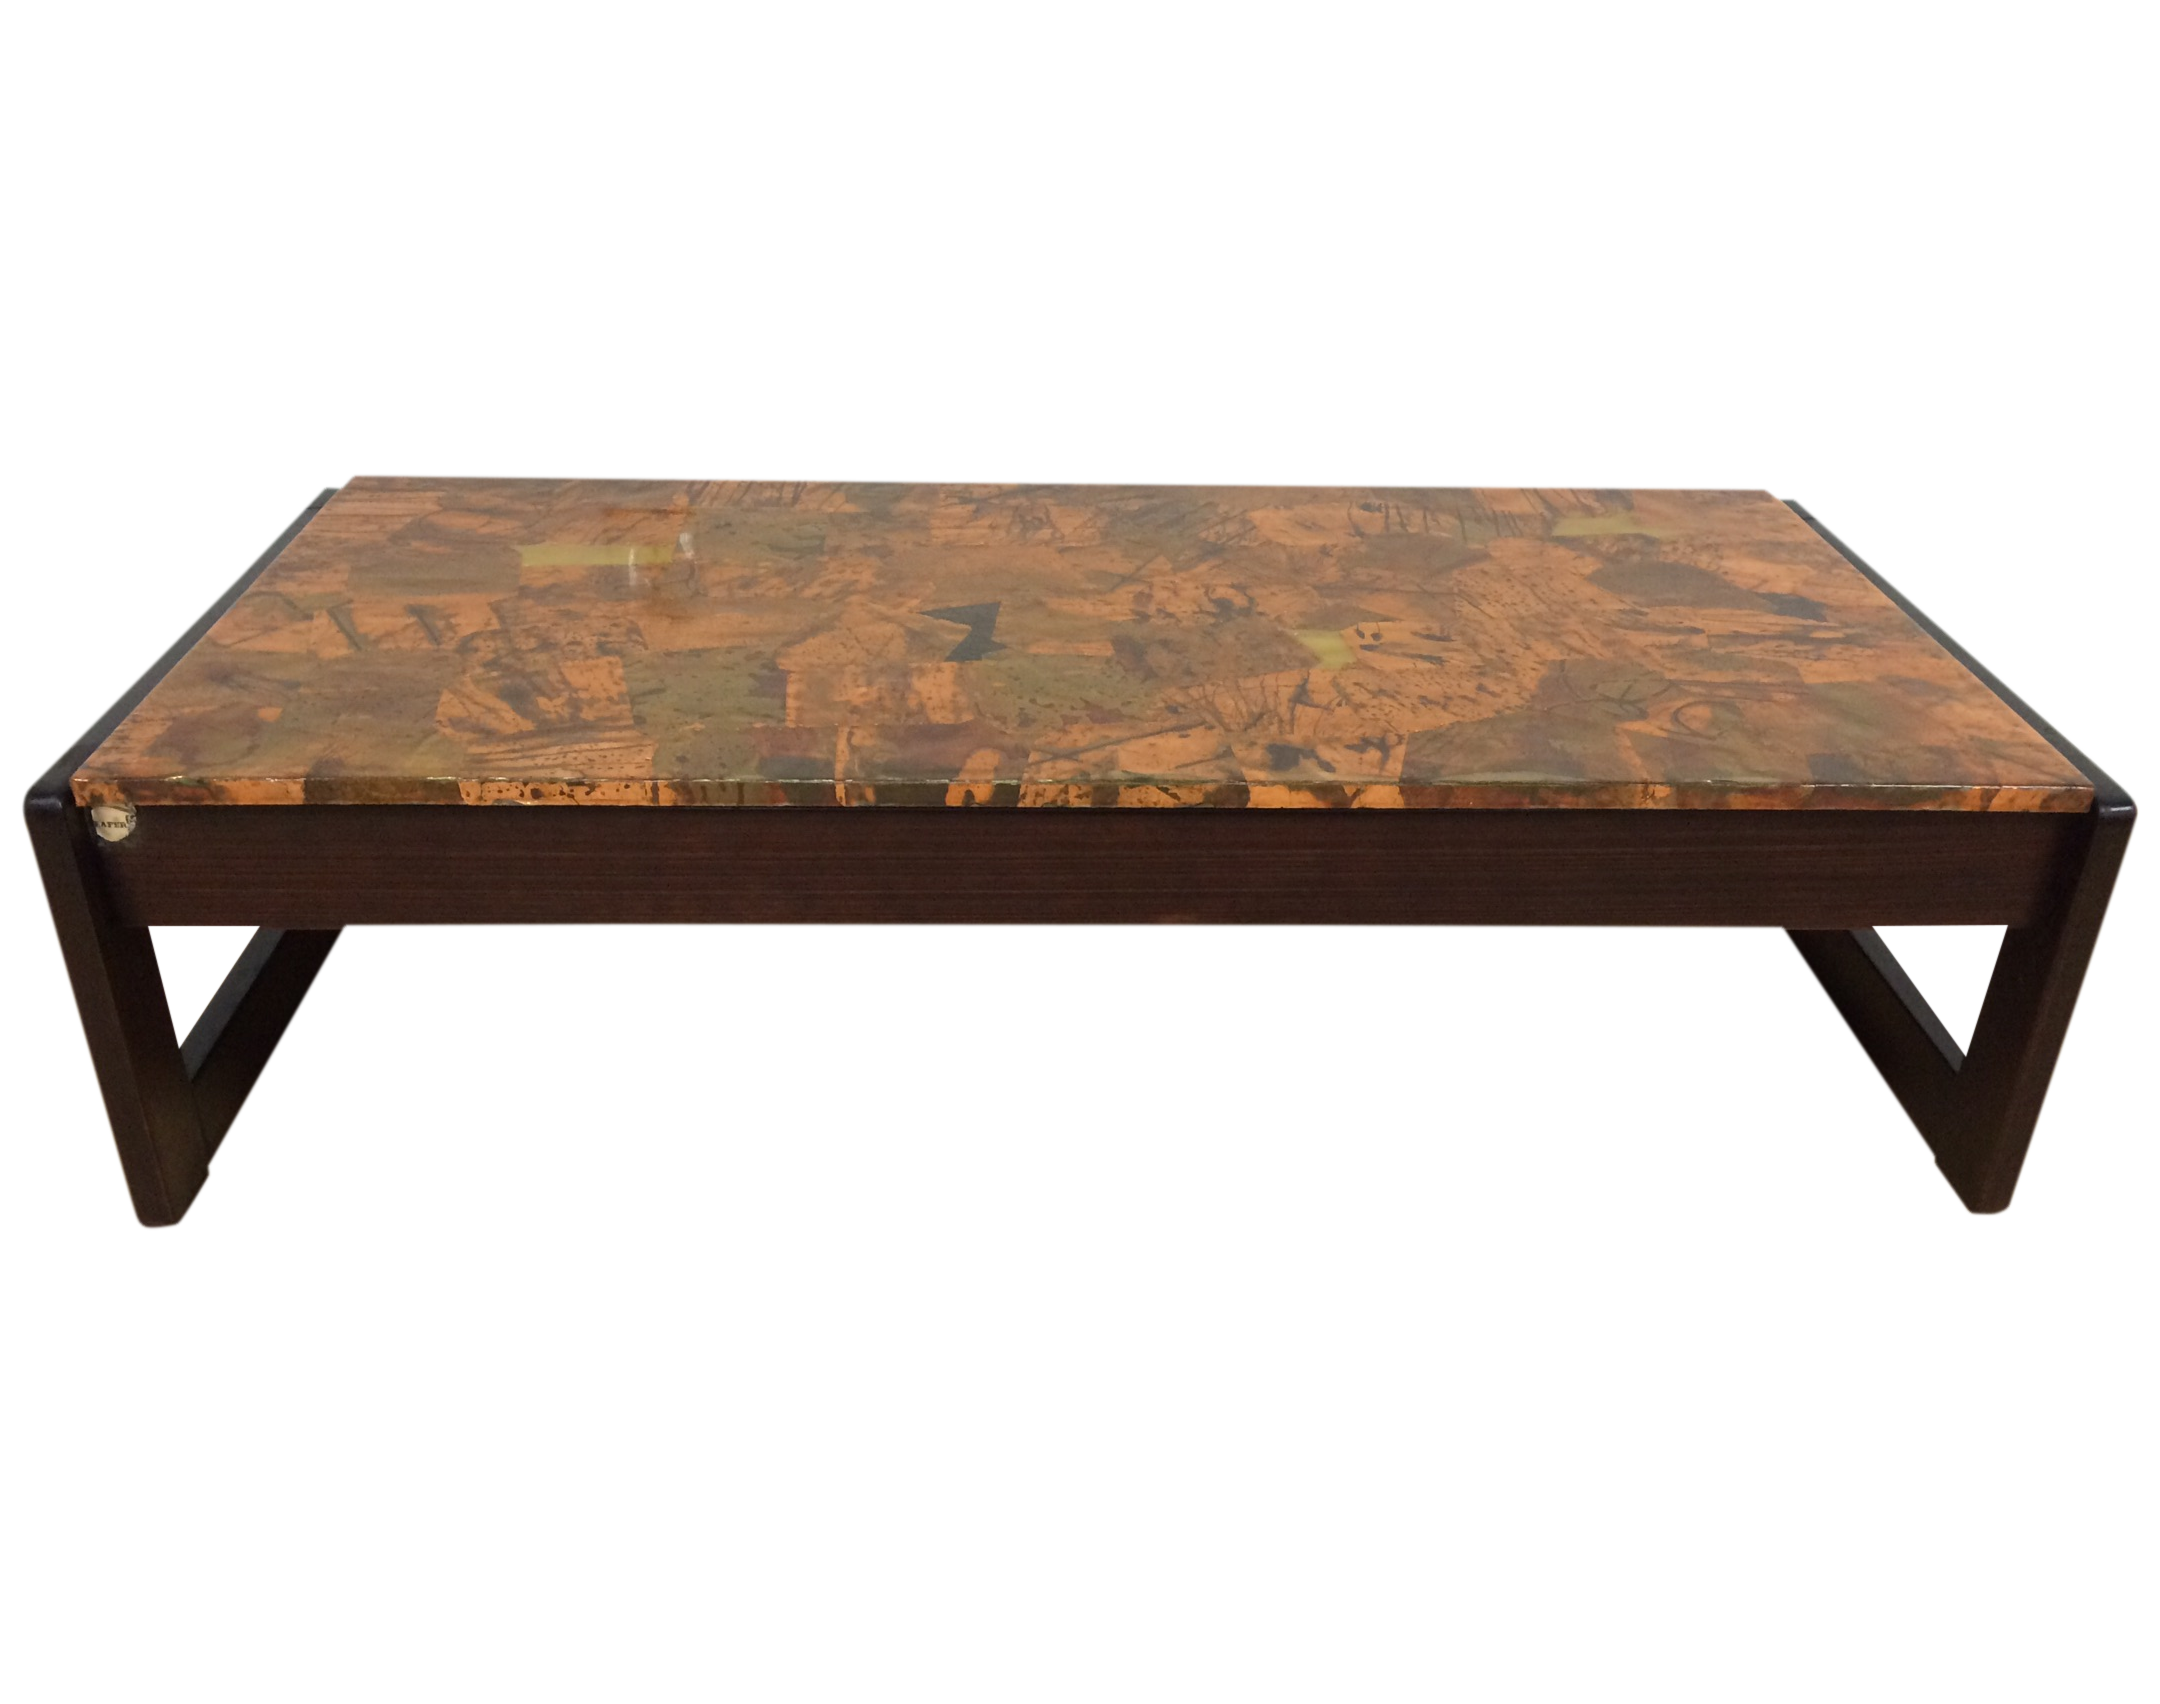 percival lafer copper and rosewood coffee table  chairish - image of percival lafer copper and rosewood coffee table